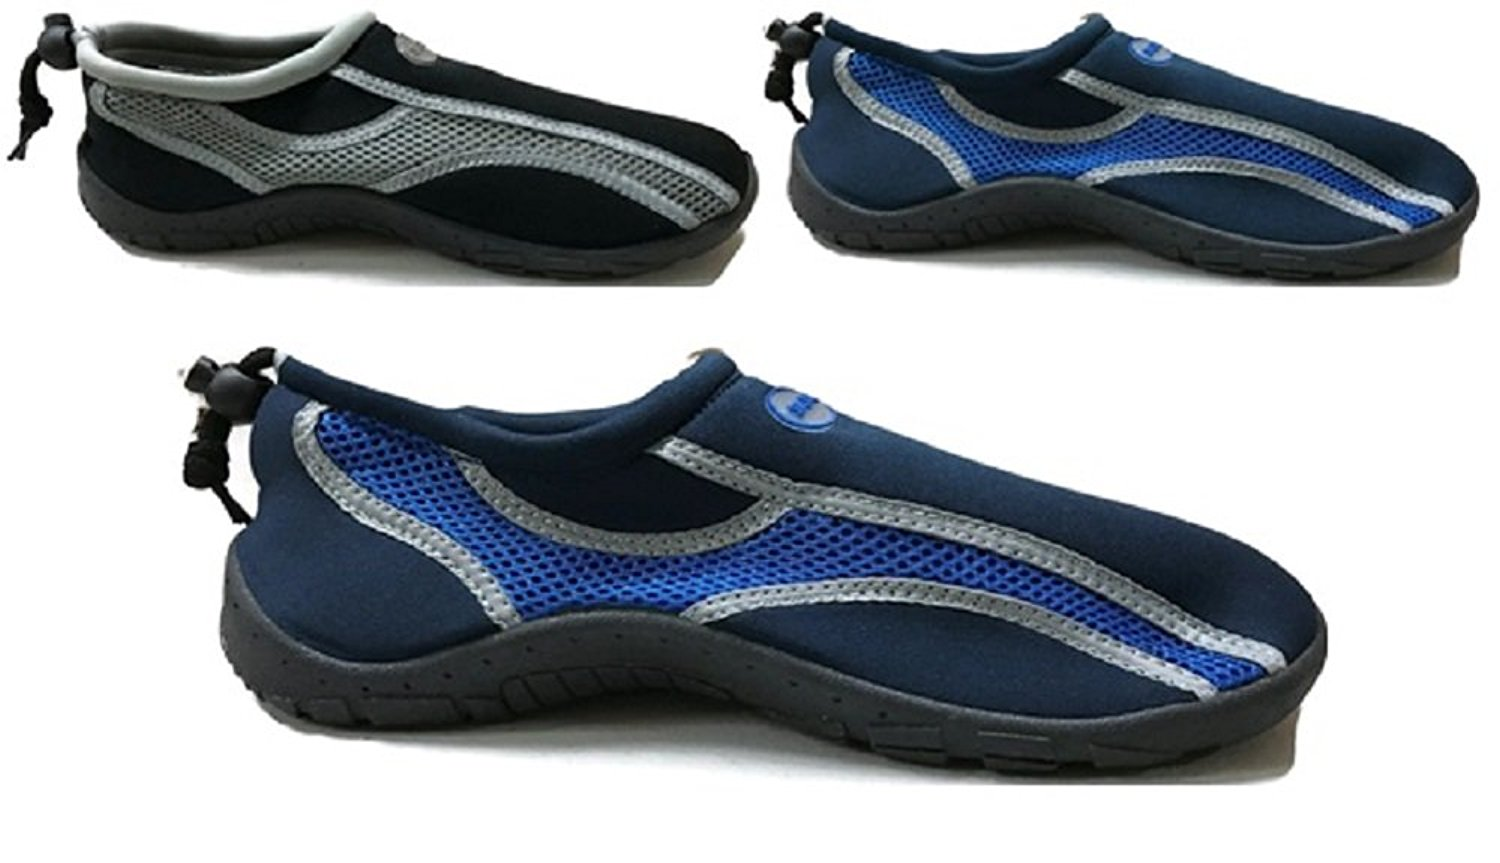 97268d4e3372be Mens Waterproof Water Shoes Aqua Socks Beach Pool Yoga Exercise Boating  Surf Mesh Adjustable Toggle